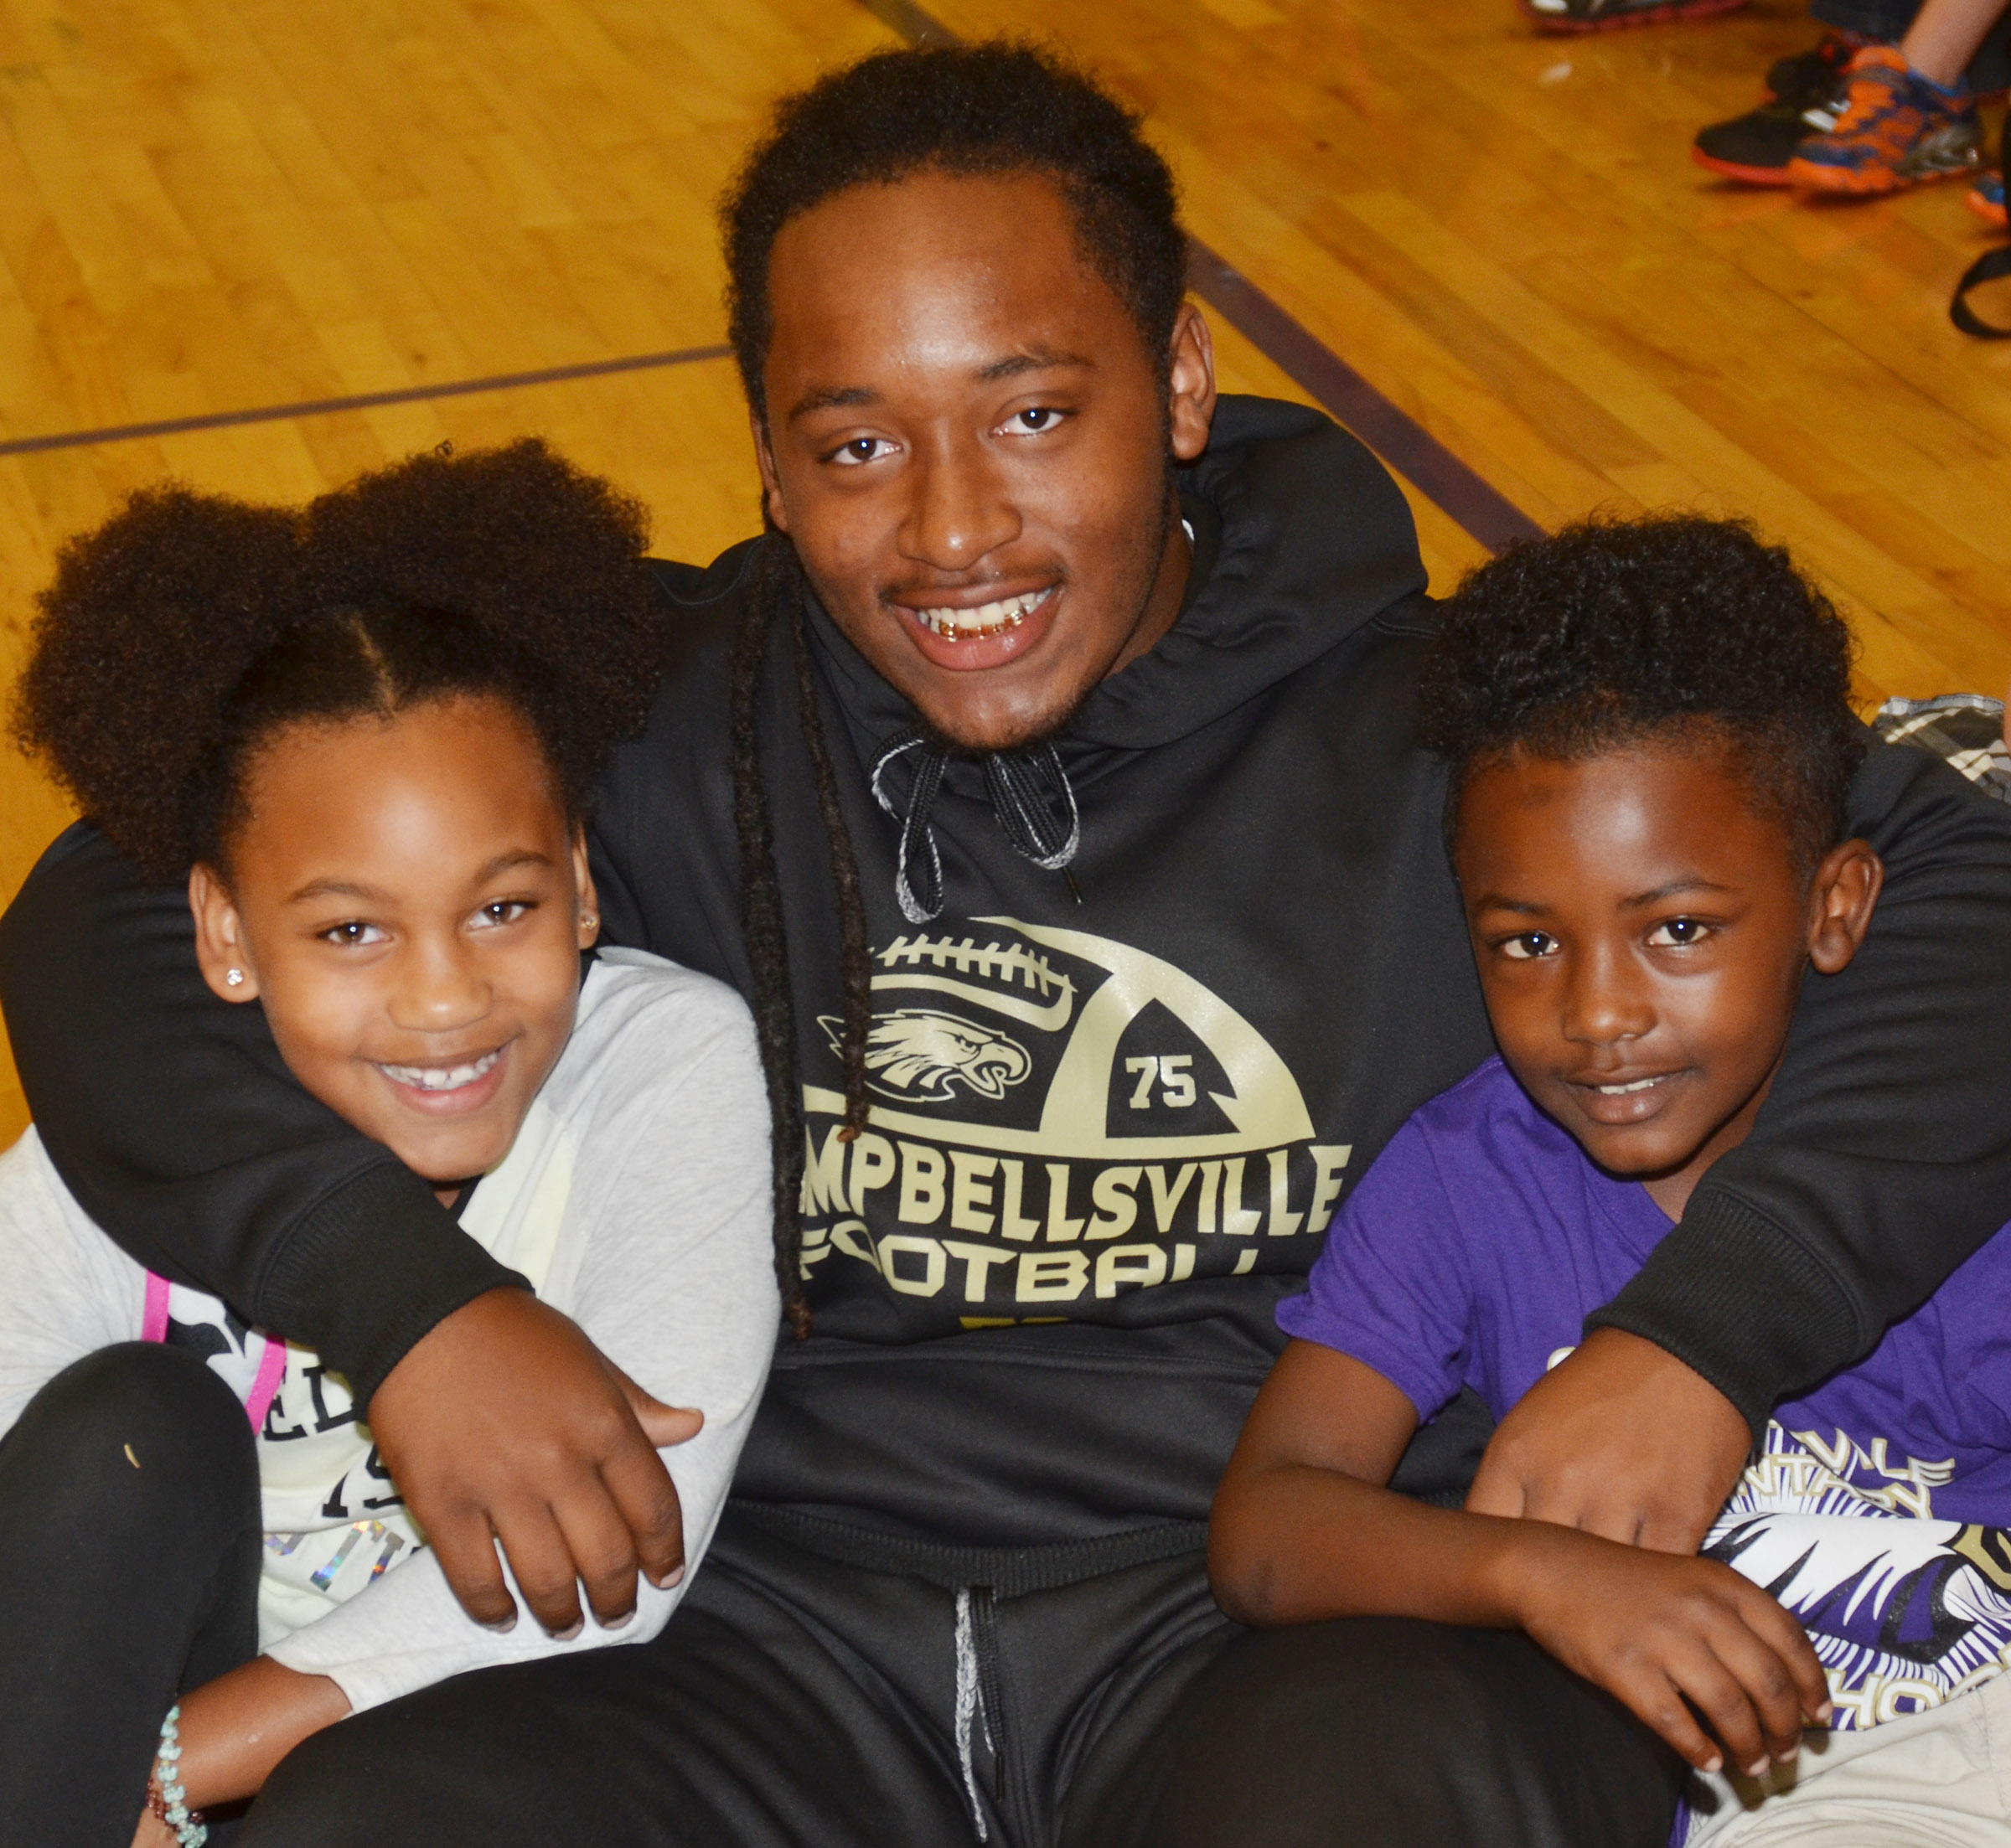 CHS junior Ceondre Barnett smiles for a photo with CES second-graders Aliy Dunn, at left, and Drelynn Hollins.